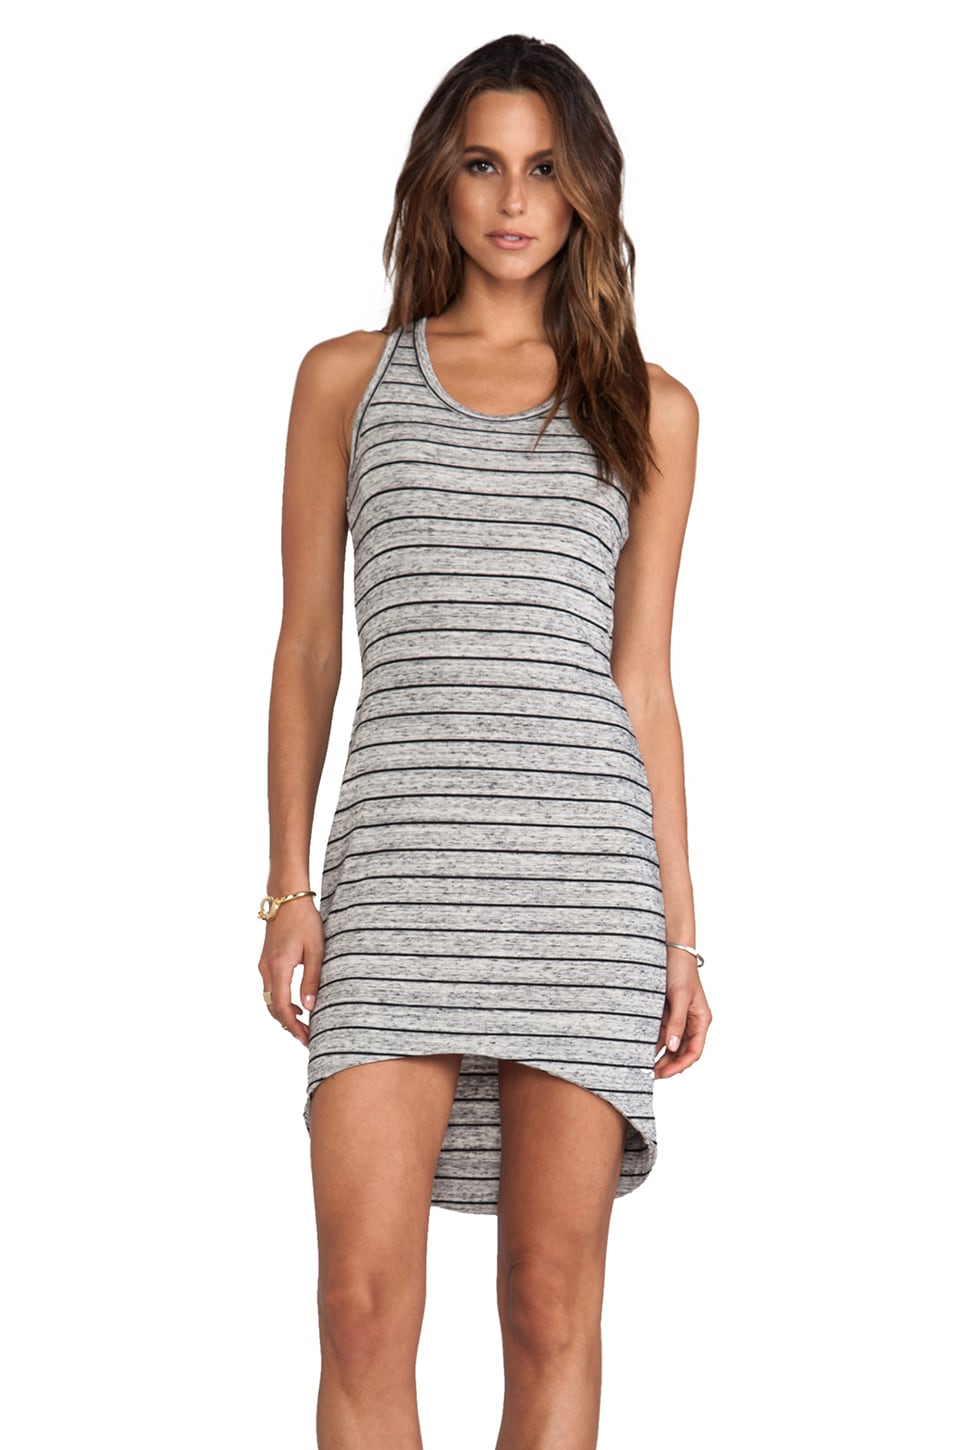 Saint Grace Jo Moby Stripe Dress in Storm & Black